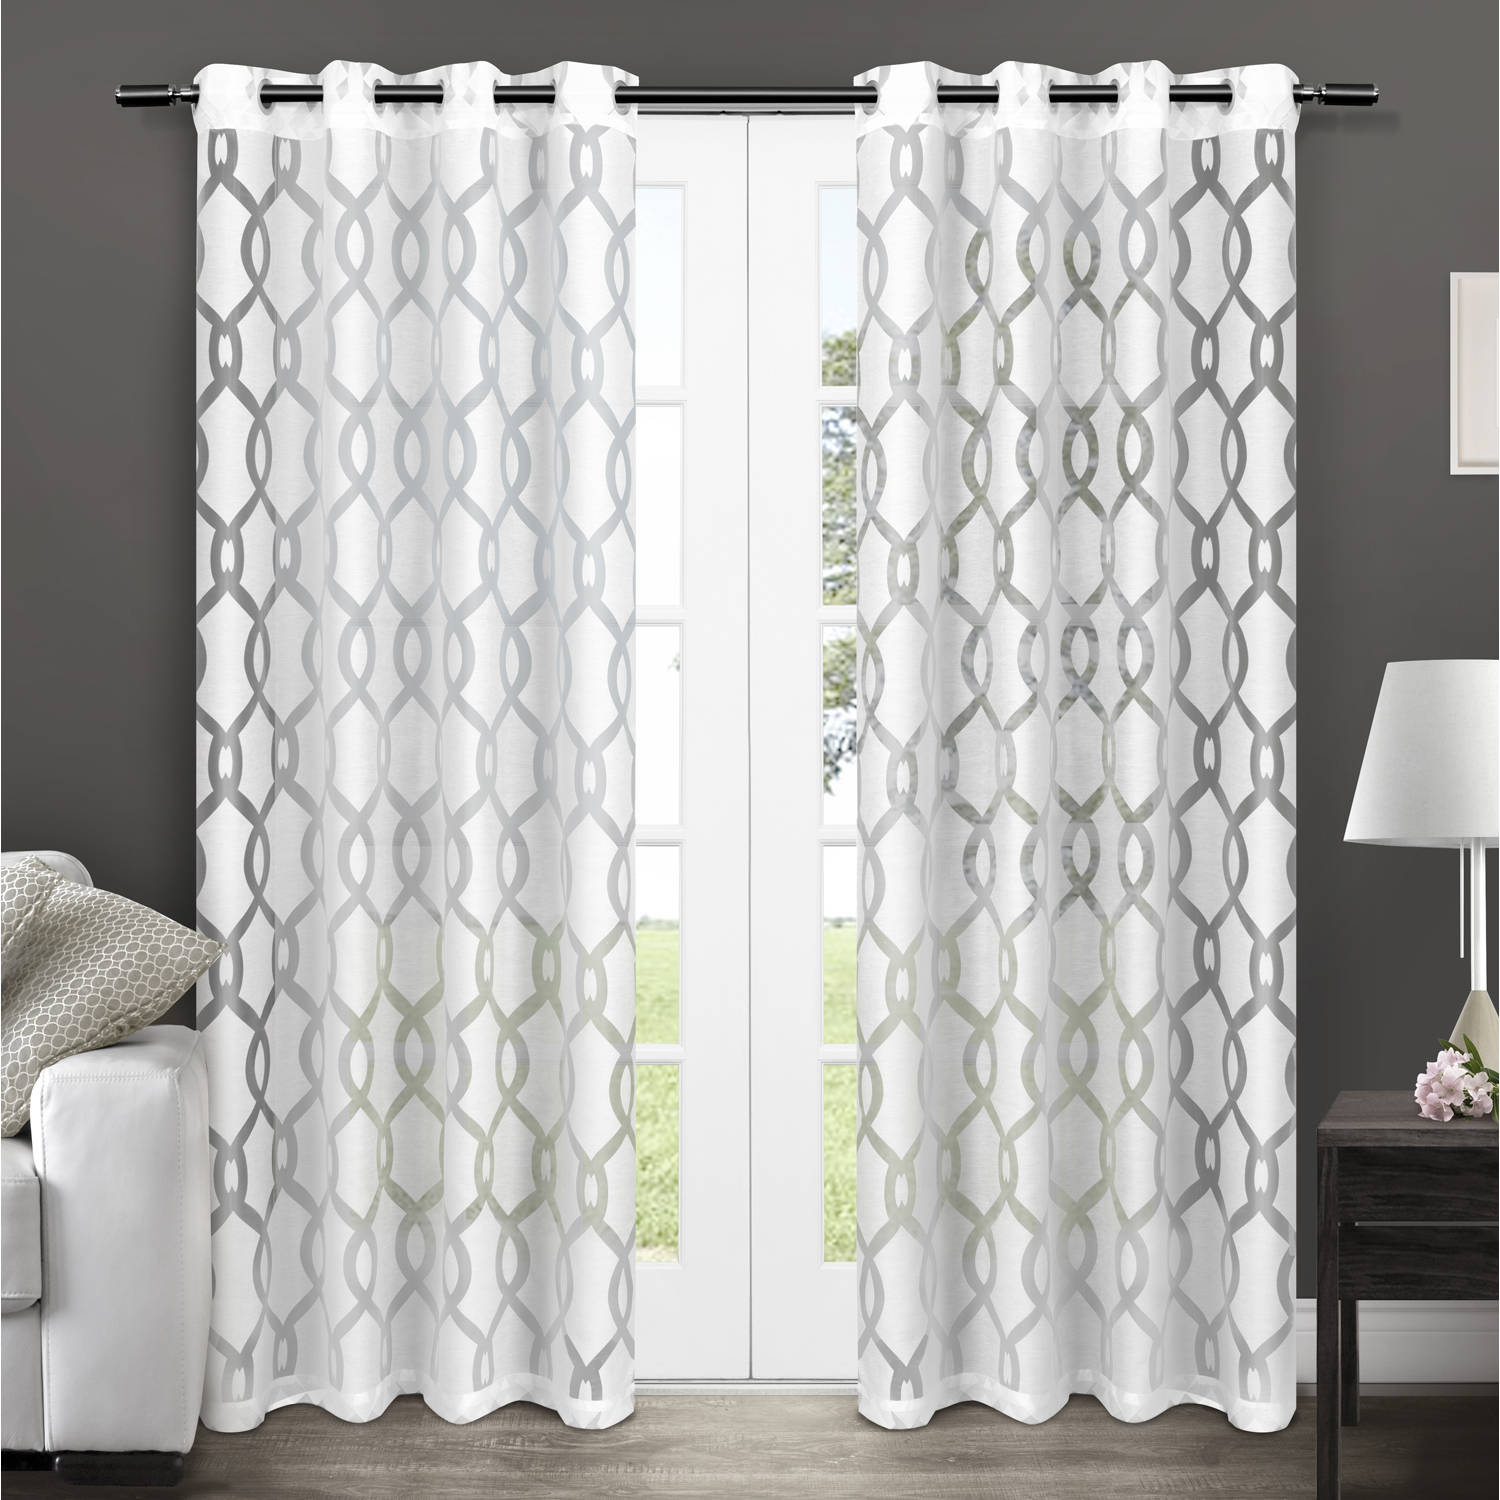 Exclusive Home Curtains 2 Pack Rio Burnout Sheer Grommet Top Curtain Panels